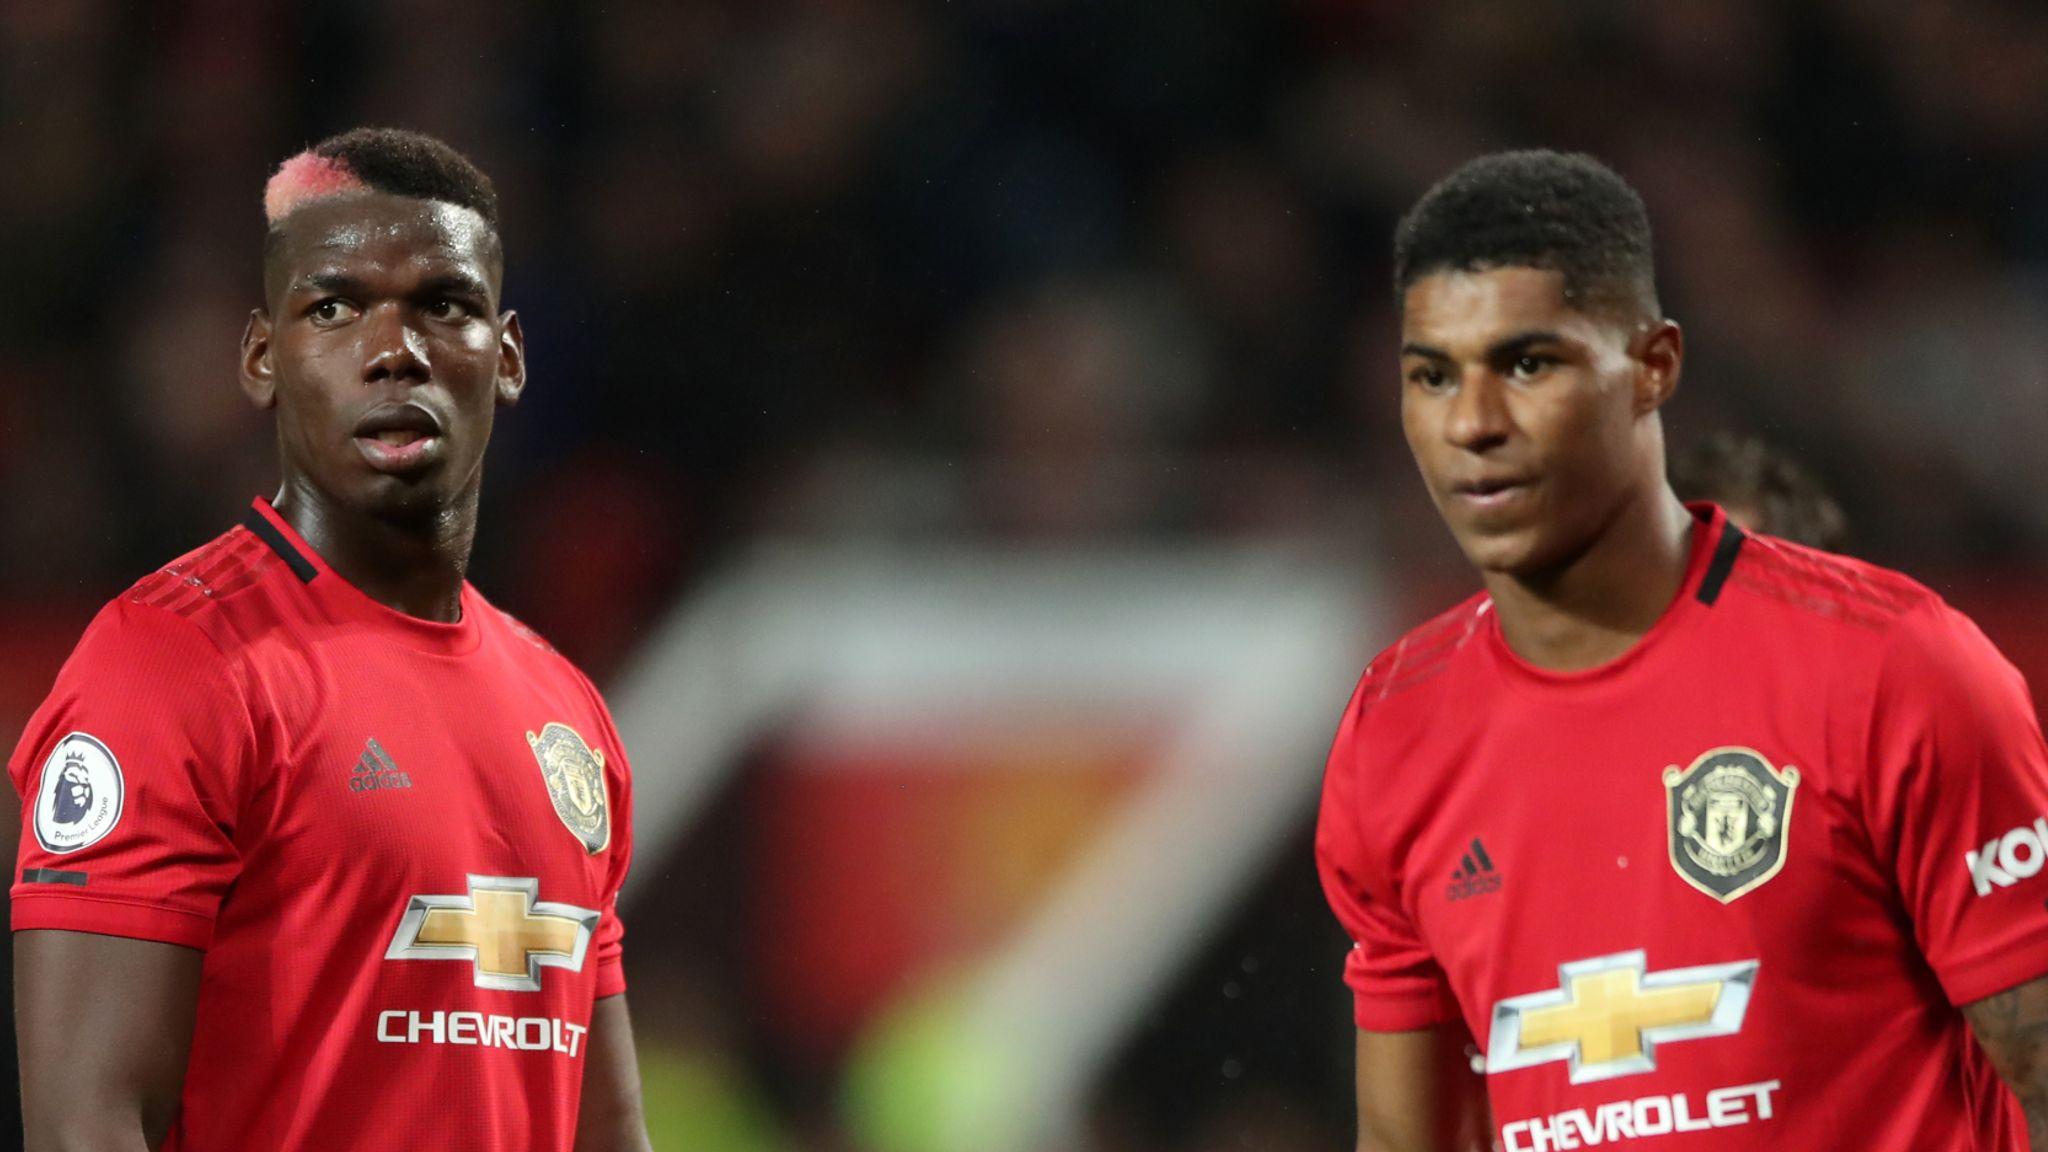 Manchester United S Paul Pogba And Marcus Rashford Fit For Premier League Restart Says Ole Gunnar Solskjaer Football News Sky Sports